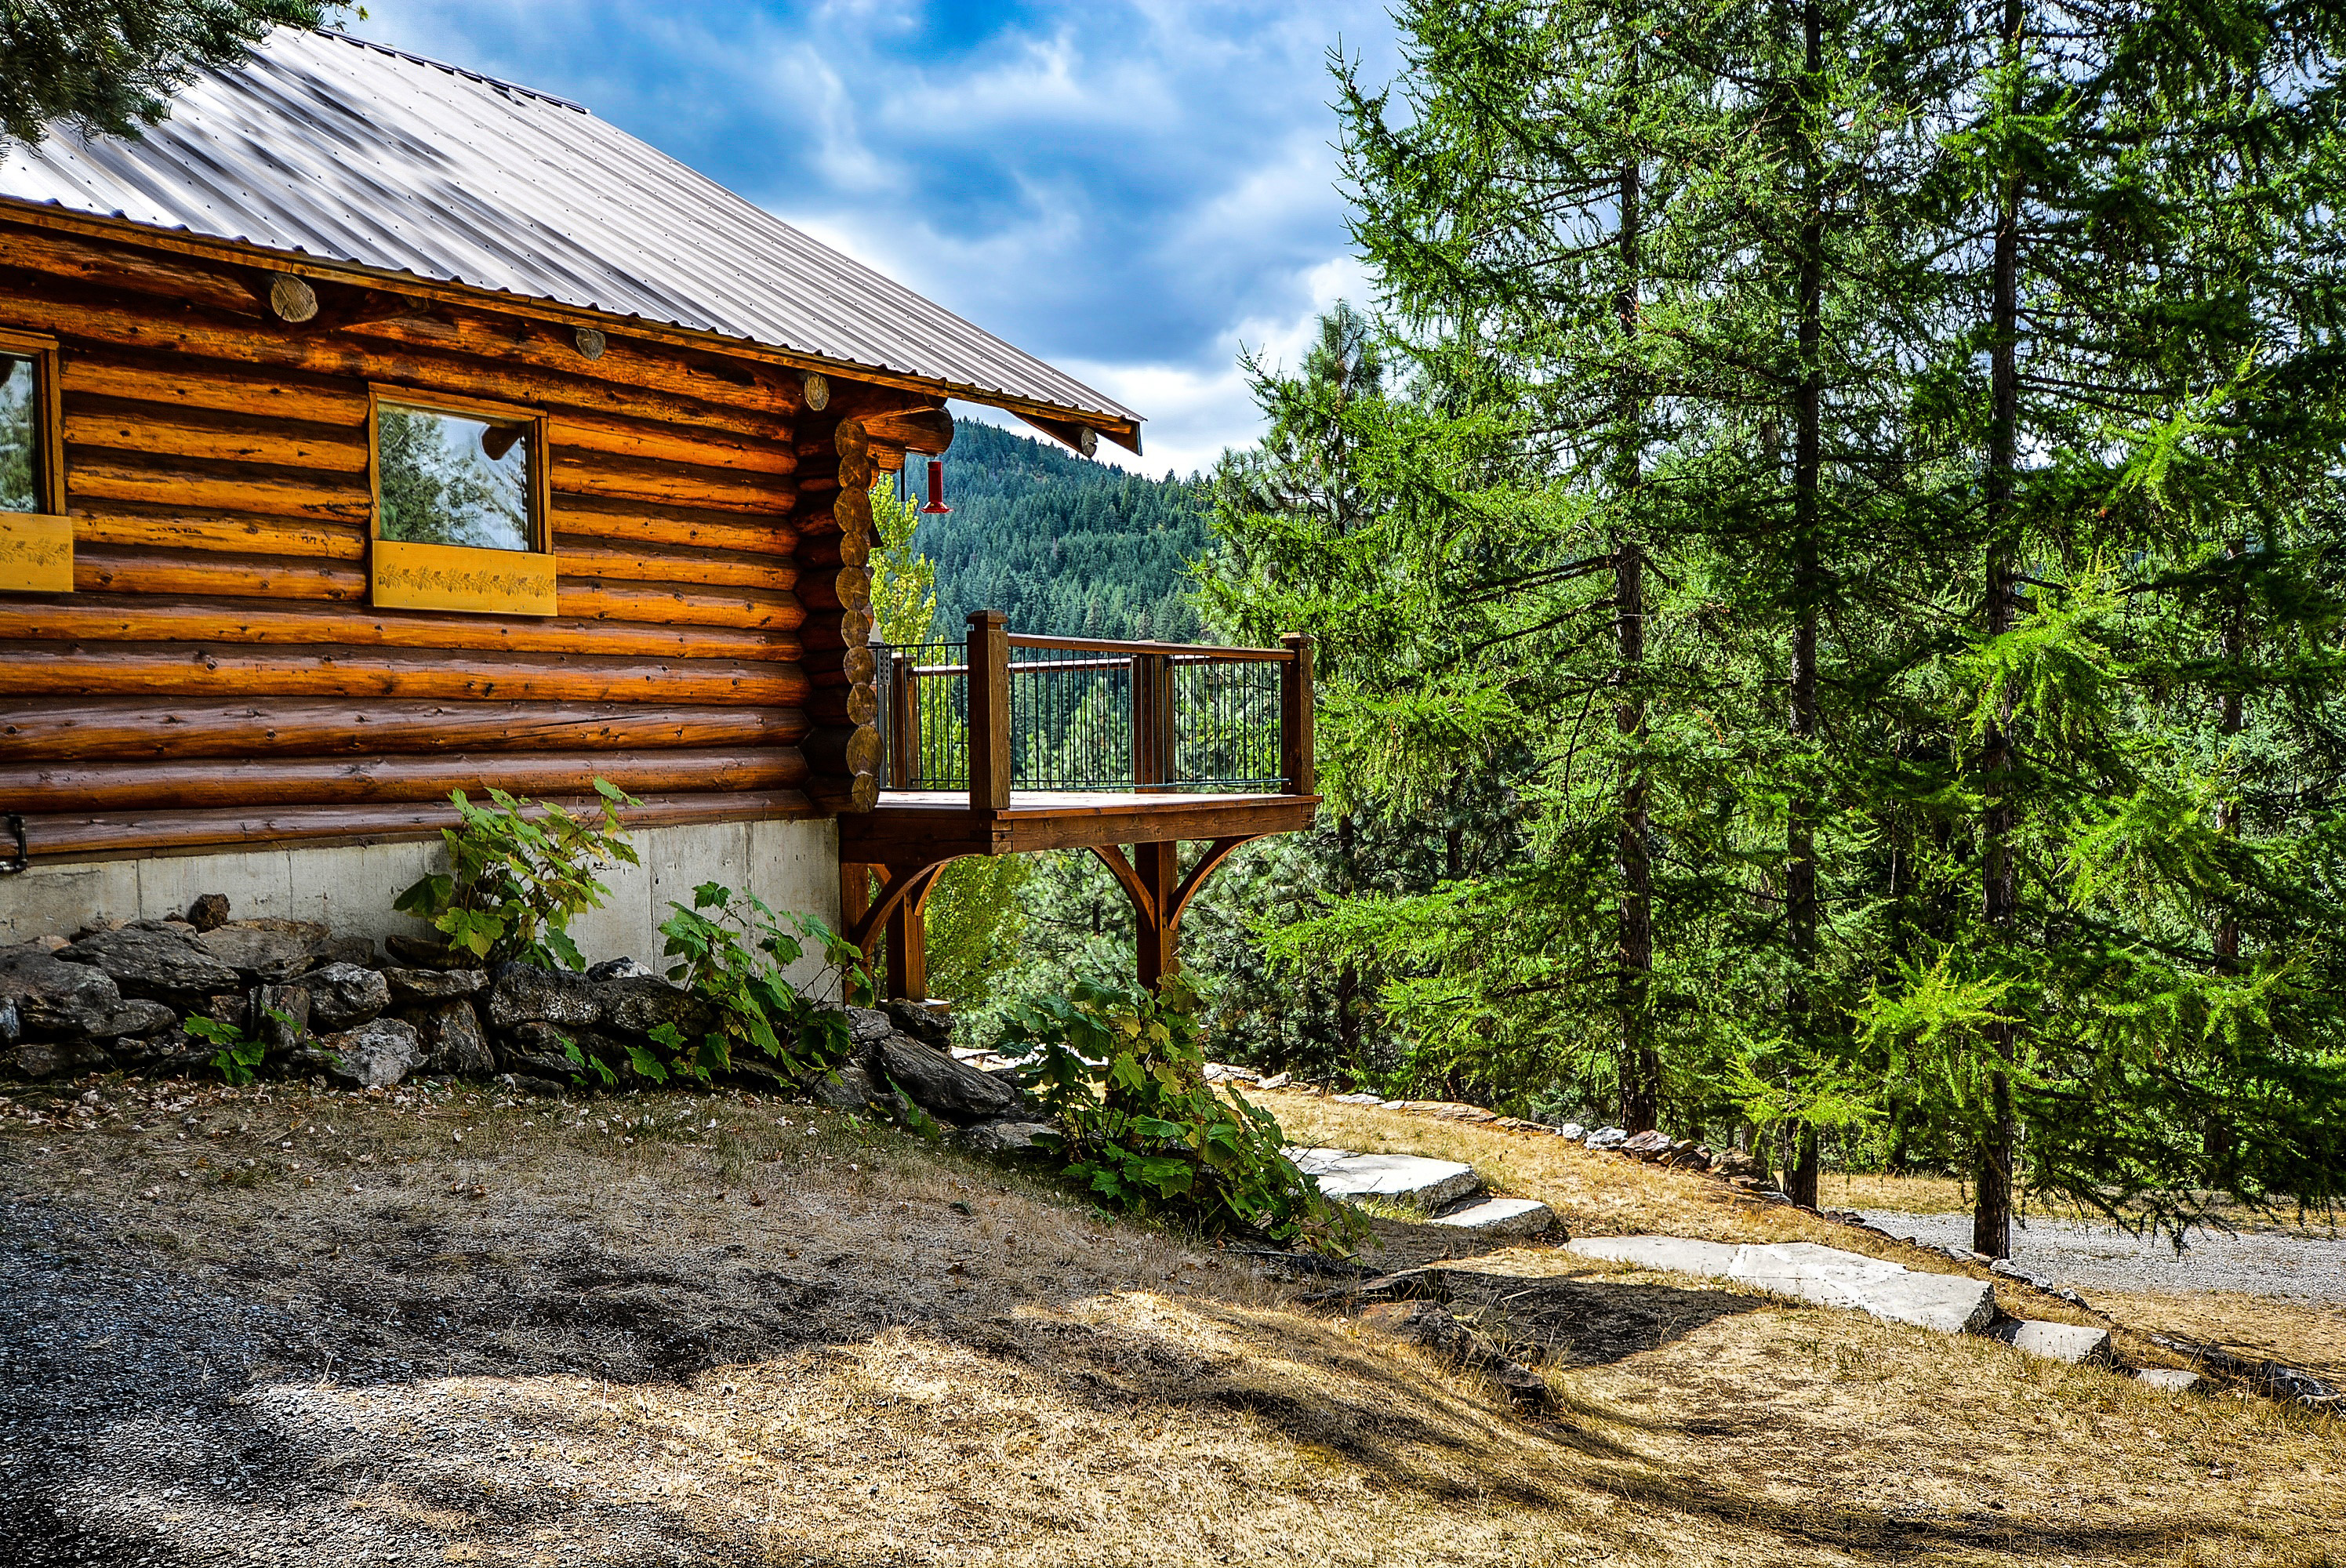 Etonnant Free Photos U003e Other Landscapes Photos U003e Rustic Cabin In The Woods ...